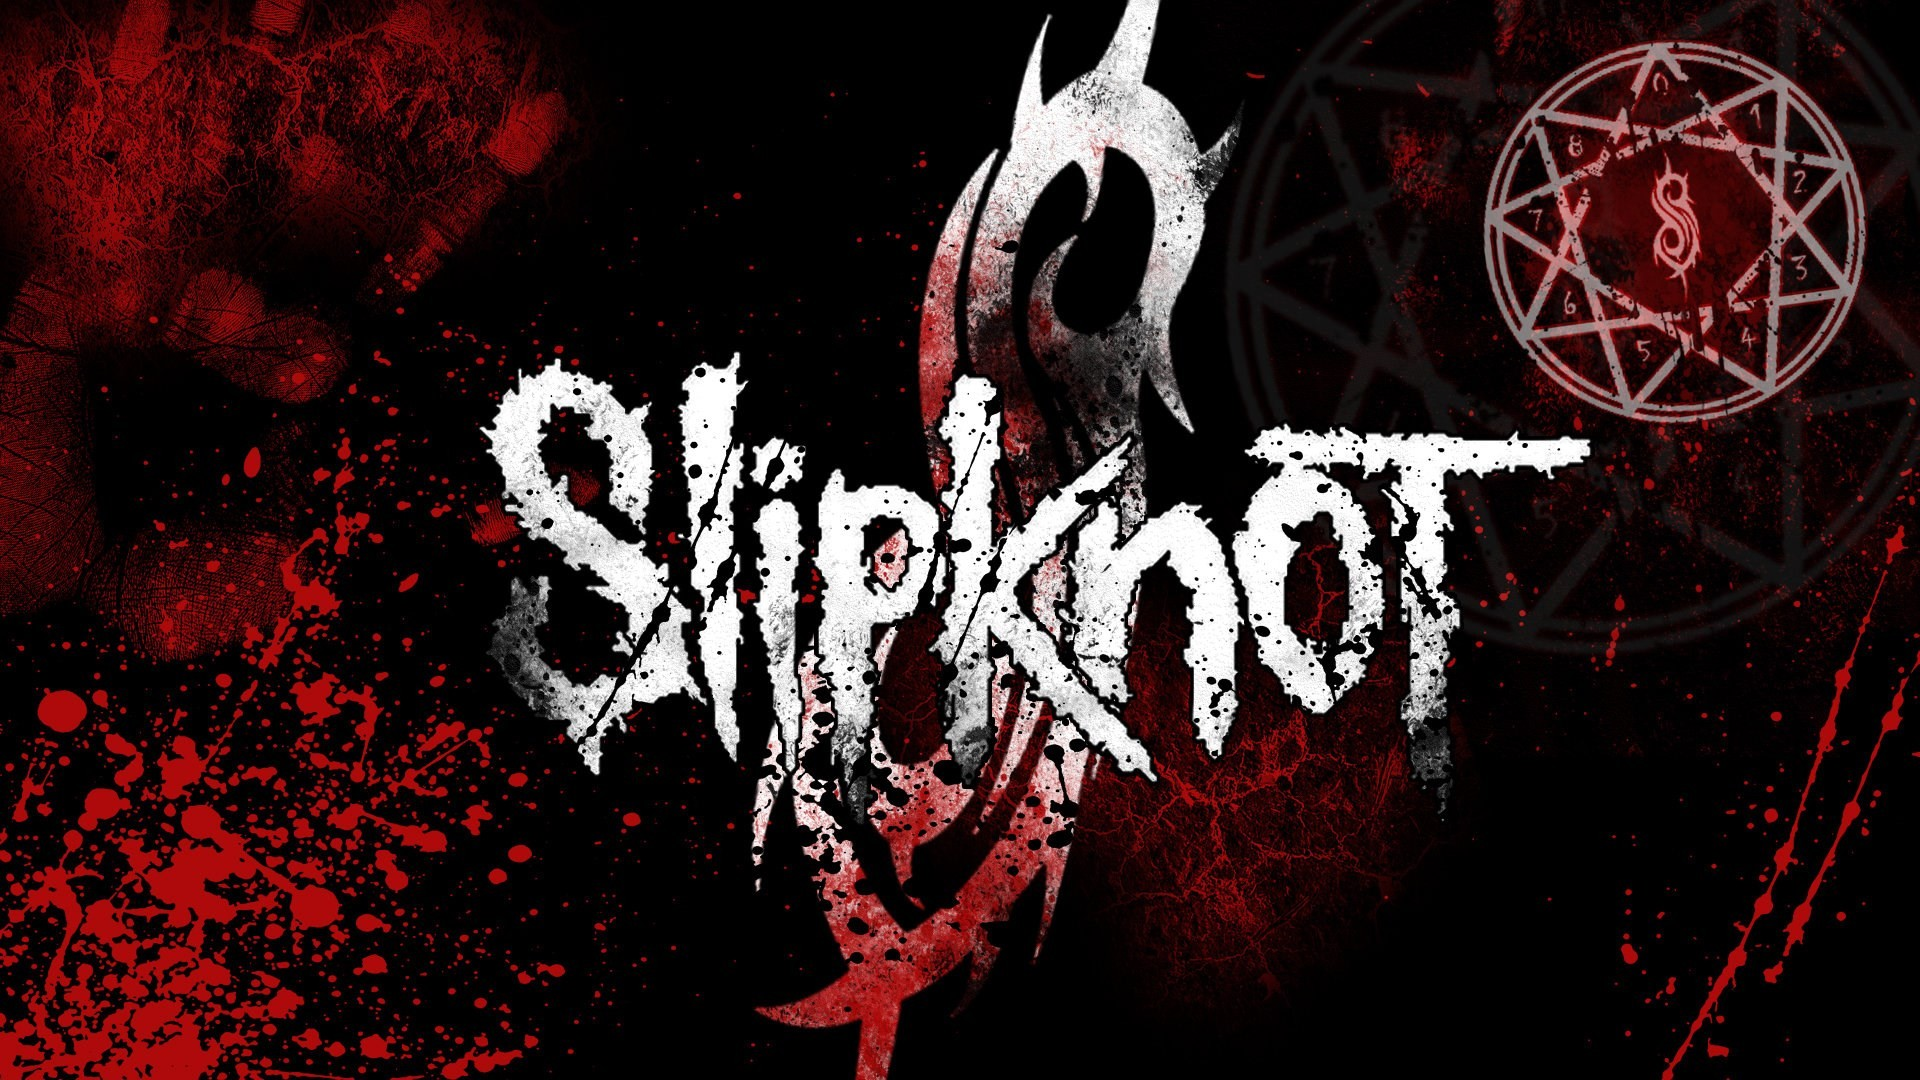 Slipknot Wallpaper Download Free Amazing Hd Wallpapers